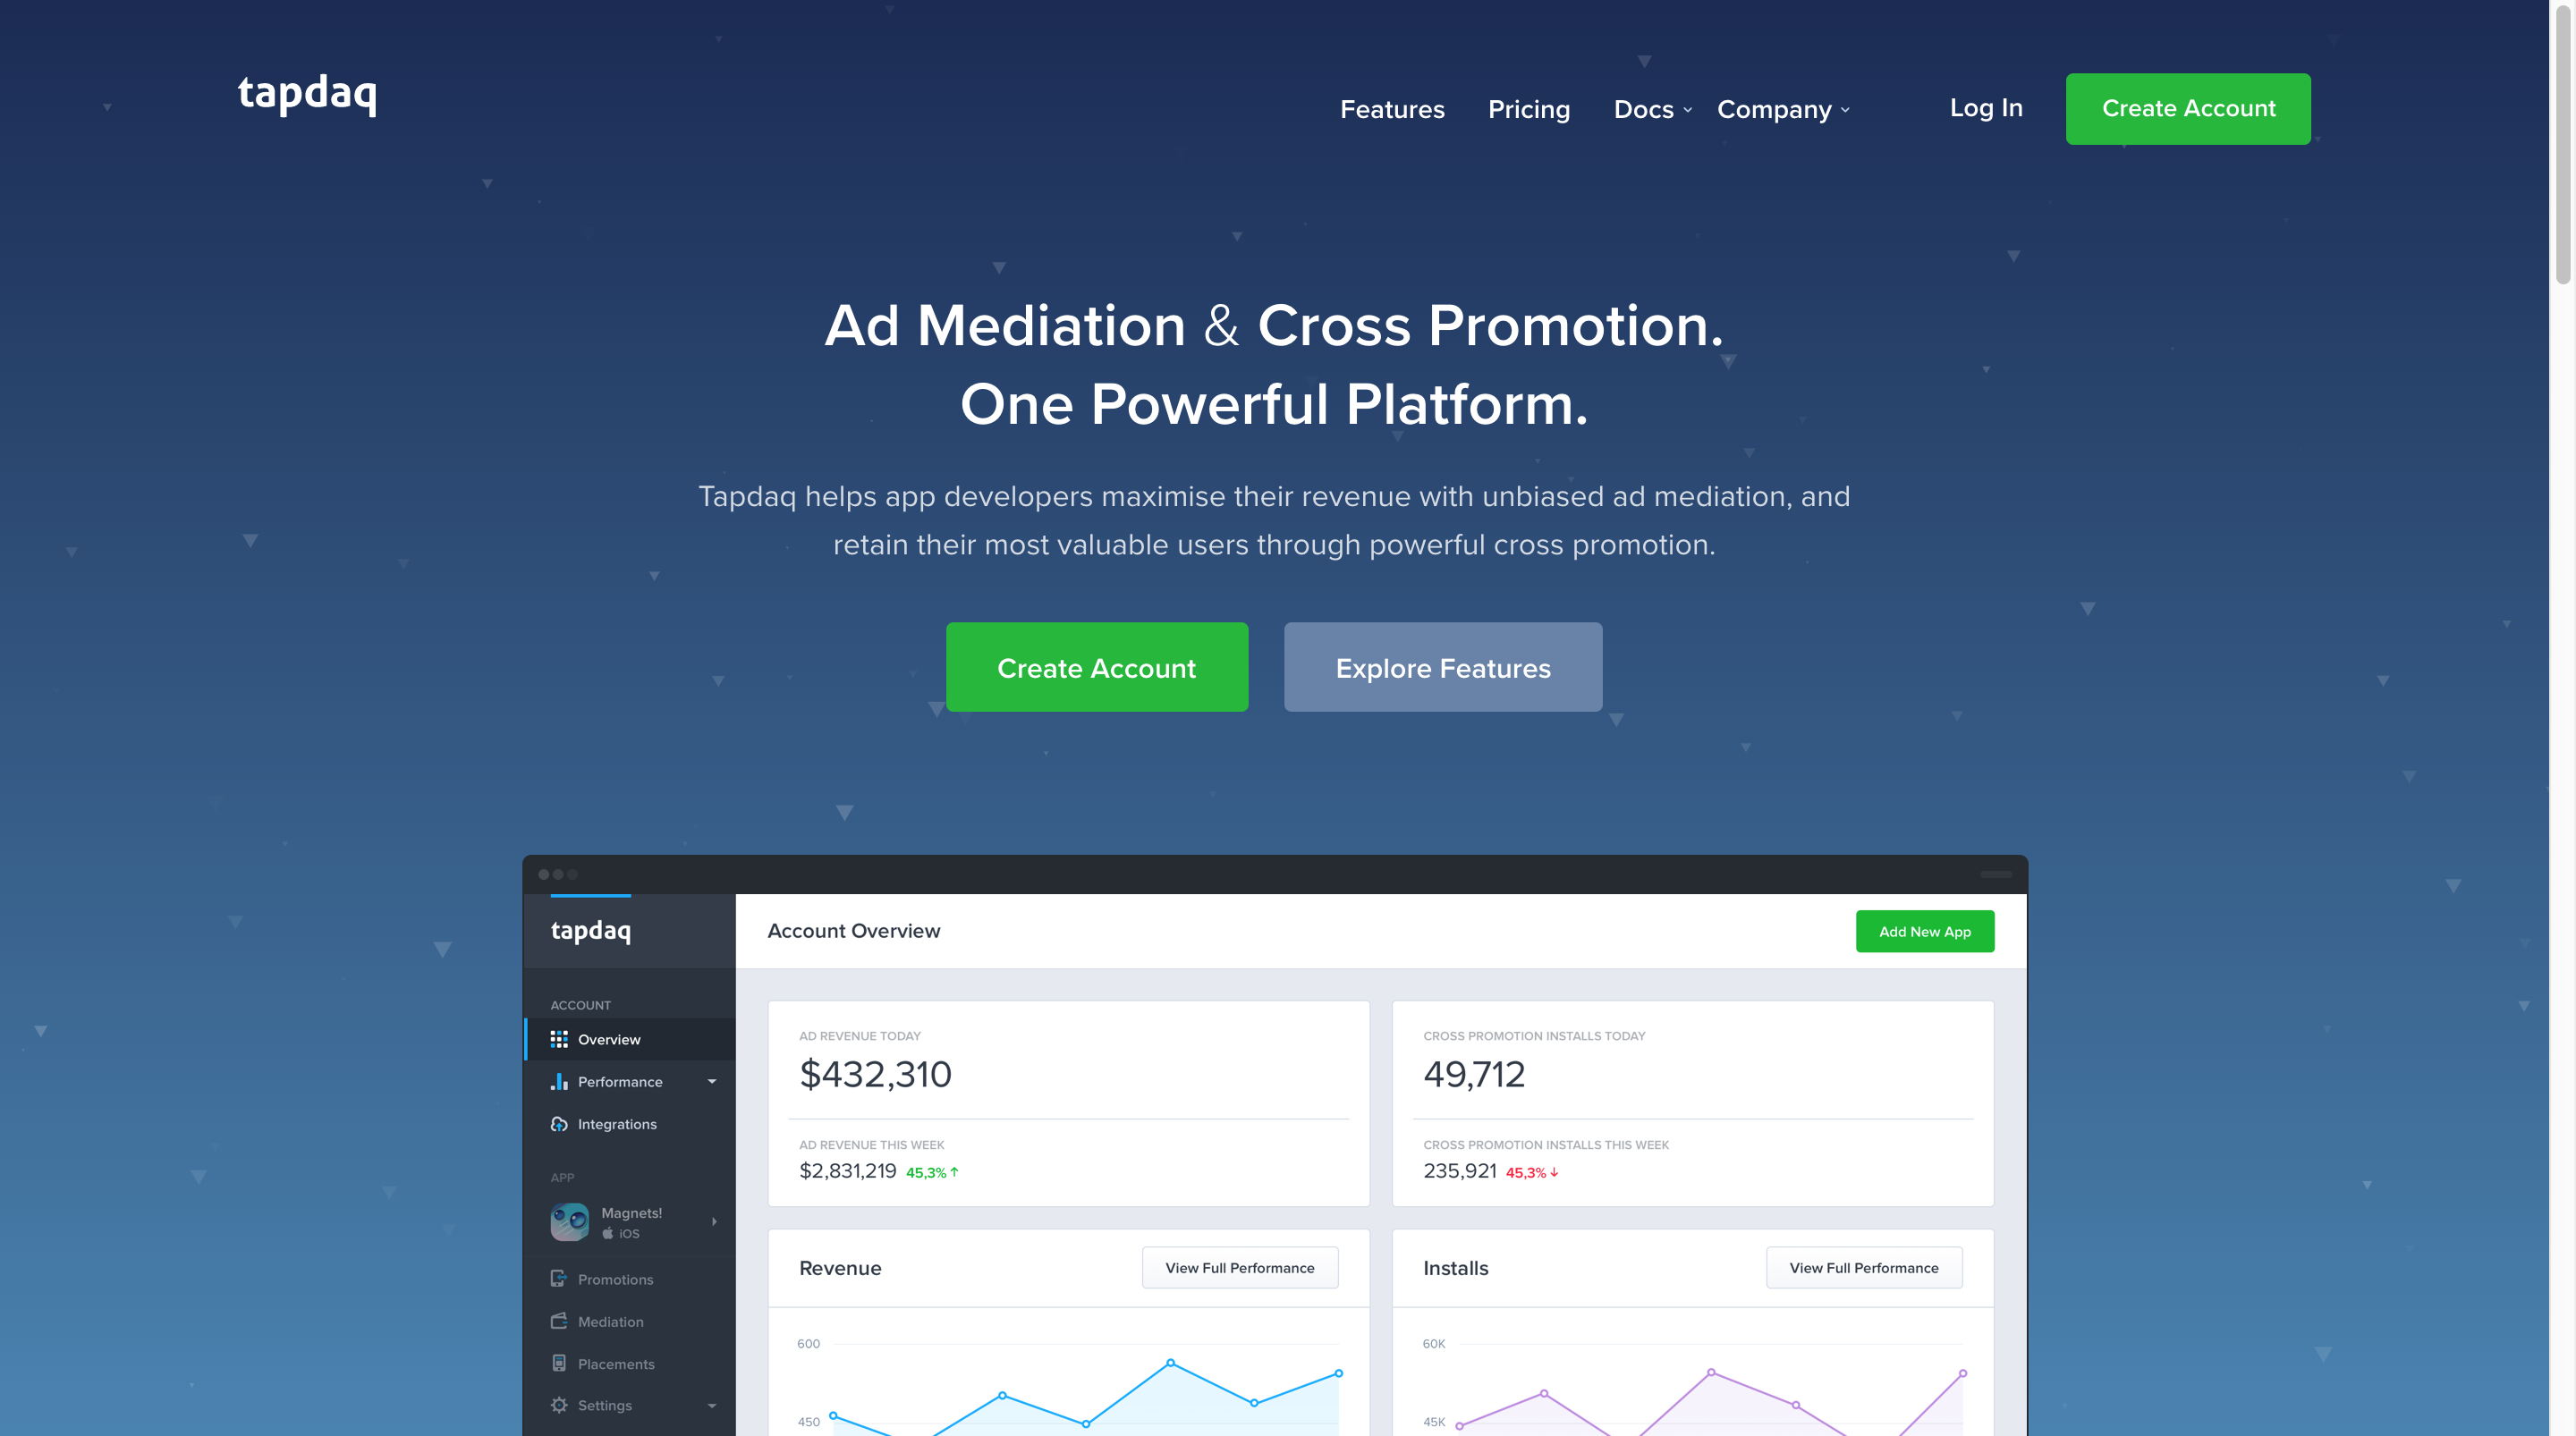 Tapdaq   Ad Mediation and Cross Promotion - One Powerful Platform